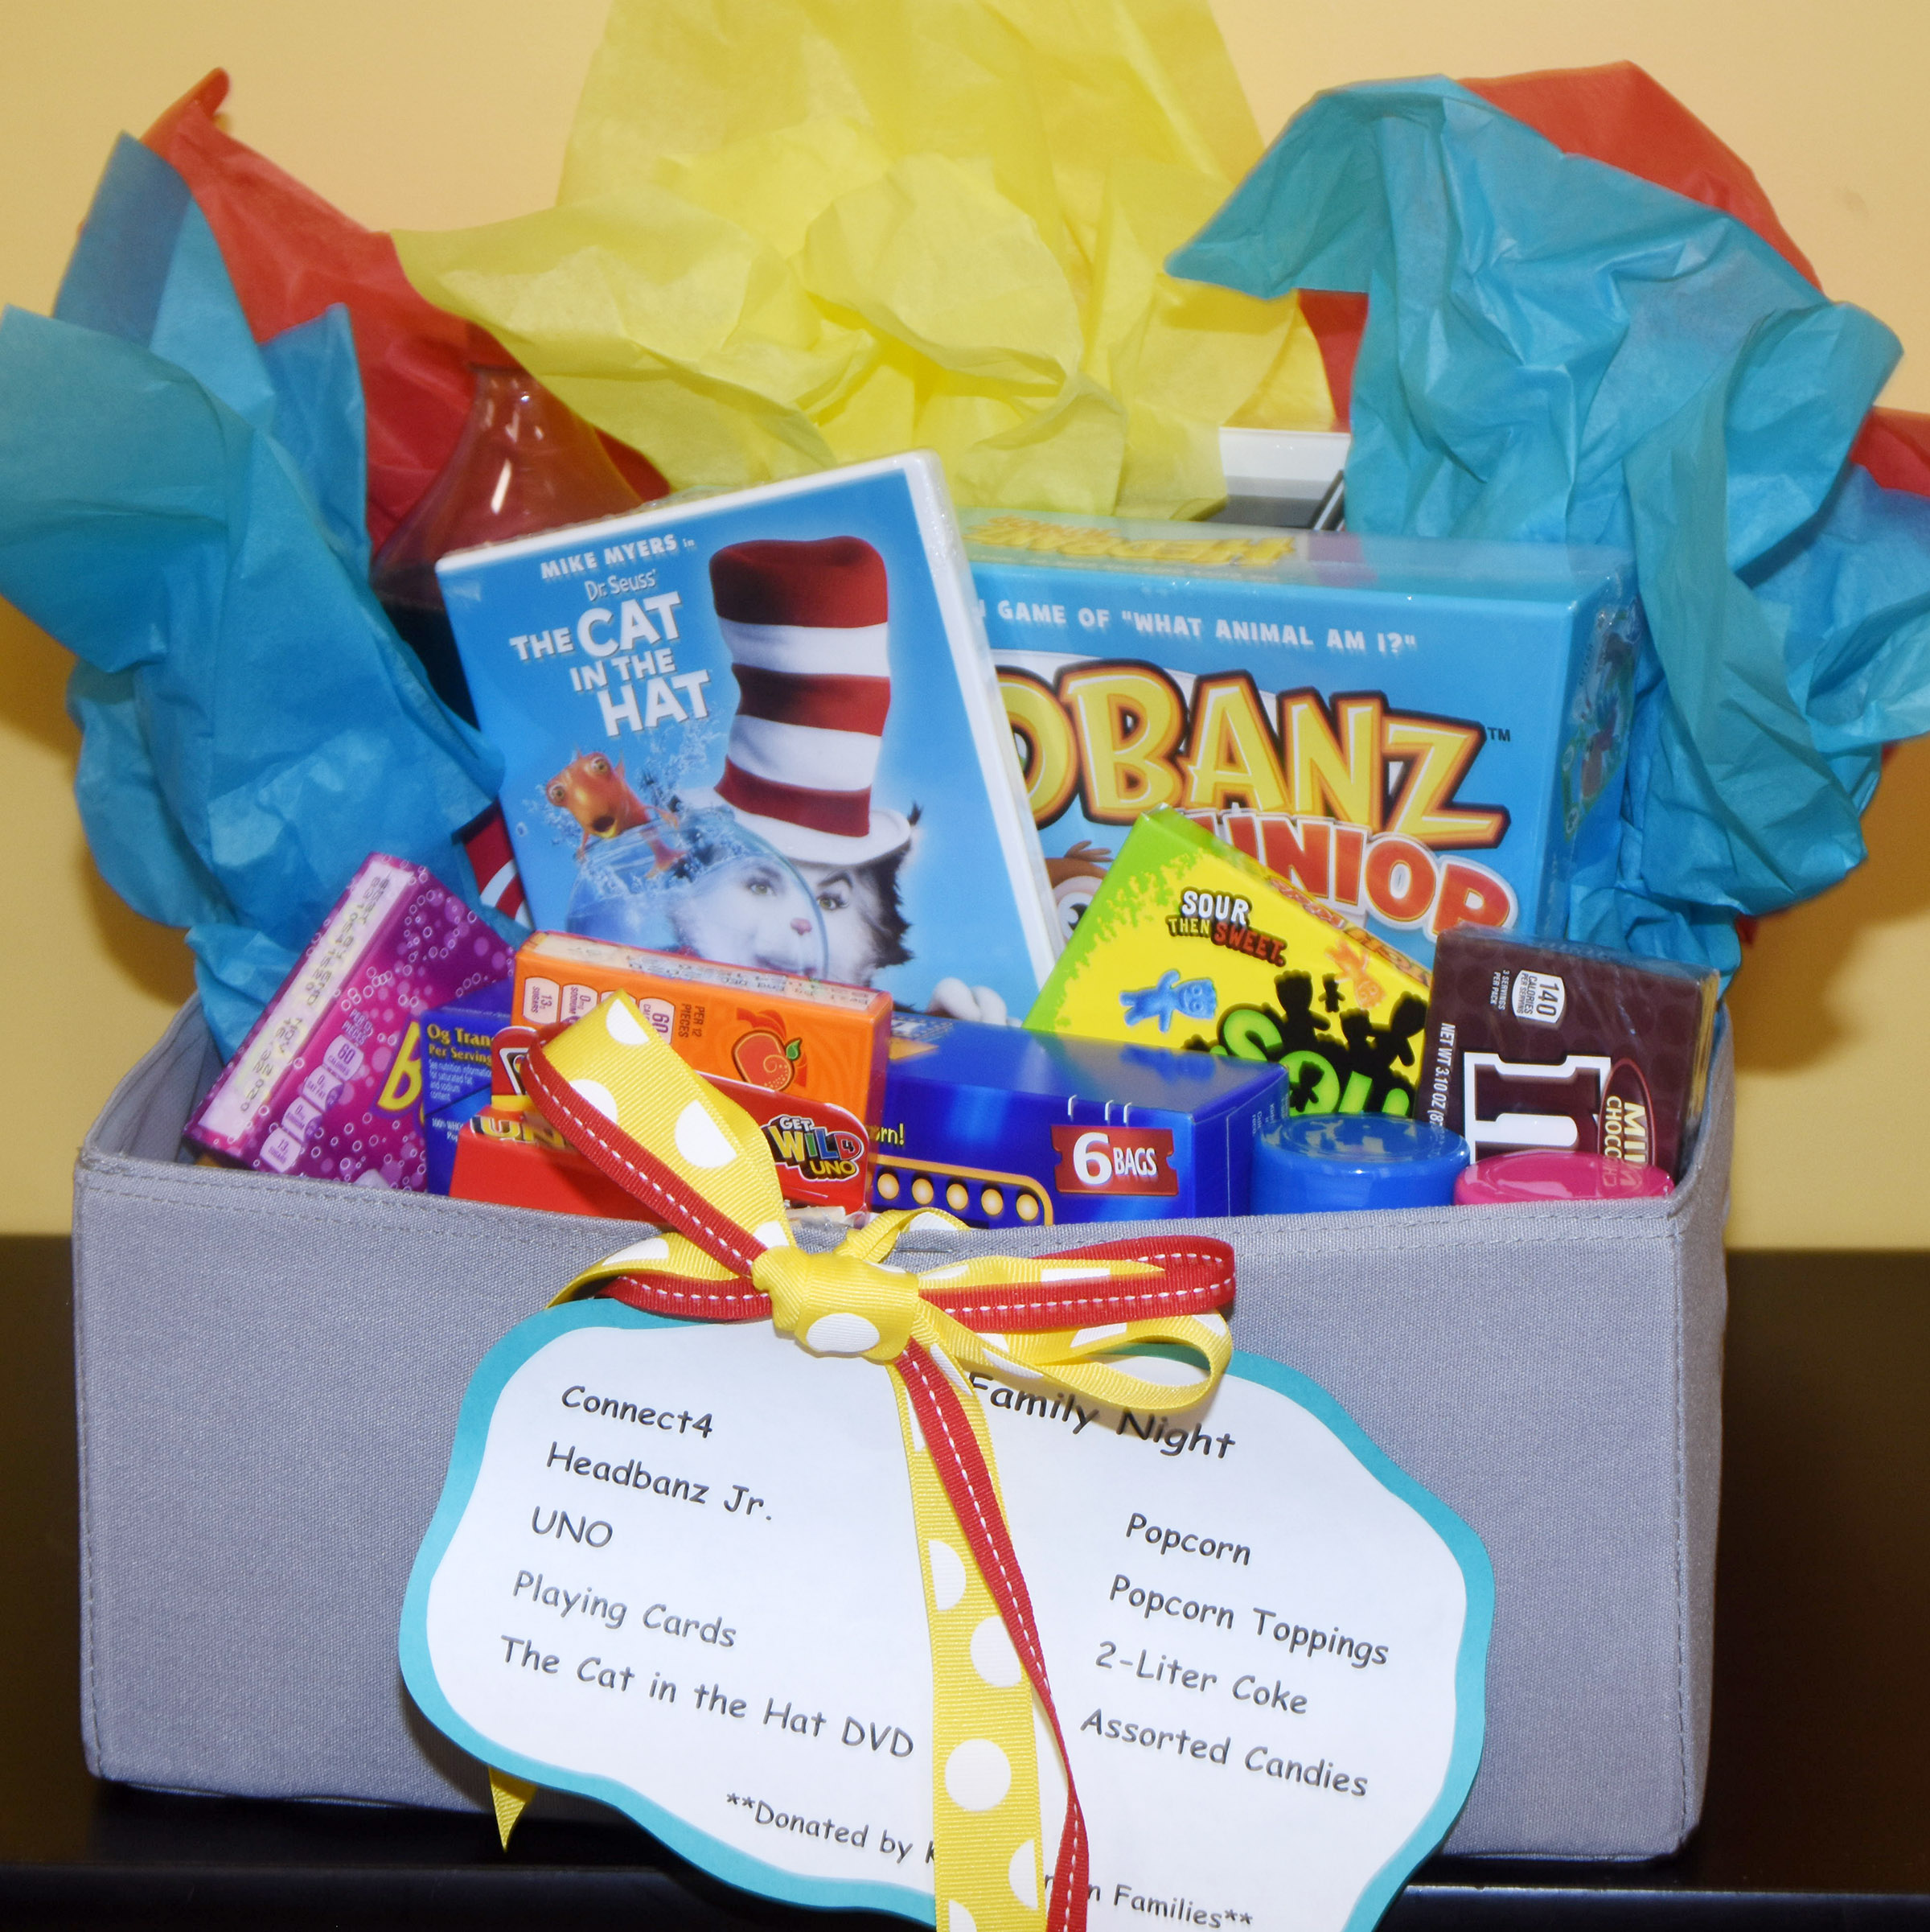 This is one of several gift baskets up for auction as part of Read Across America Week at Campbellsville Elementary School. The minimum bid for each basket is $25. All proceeds will benefit CES.